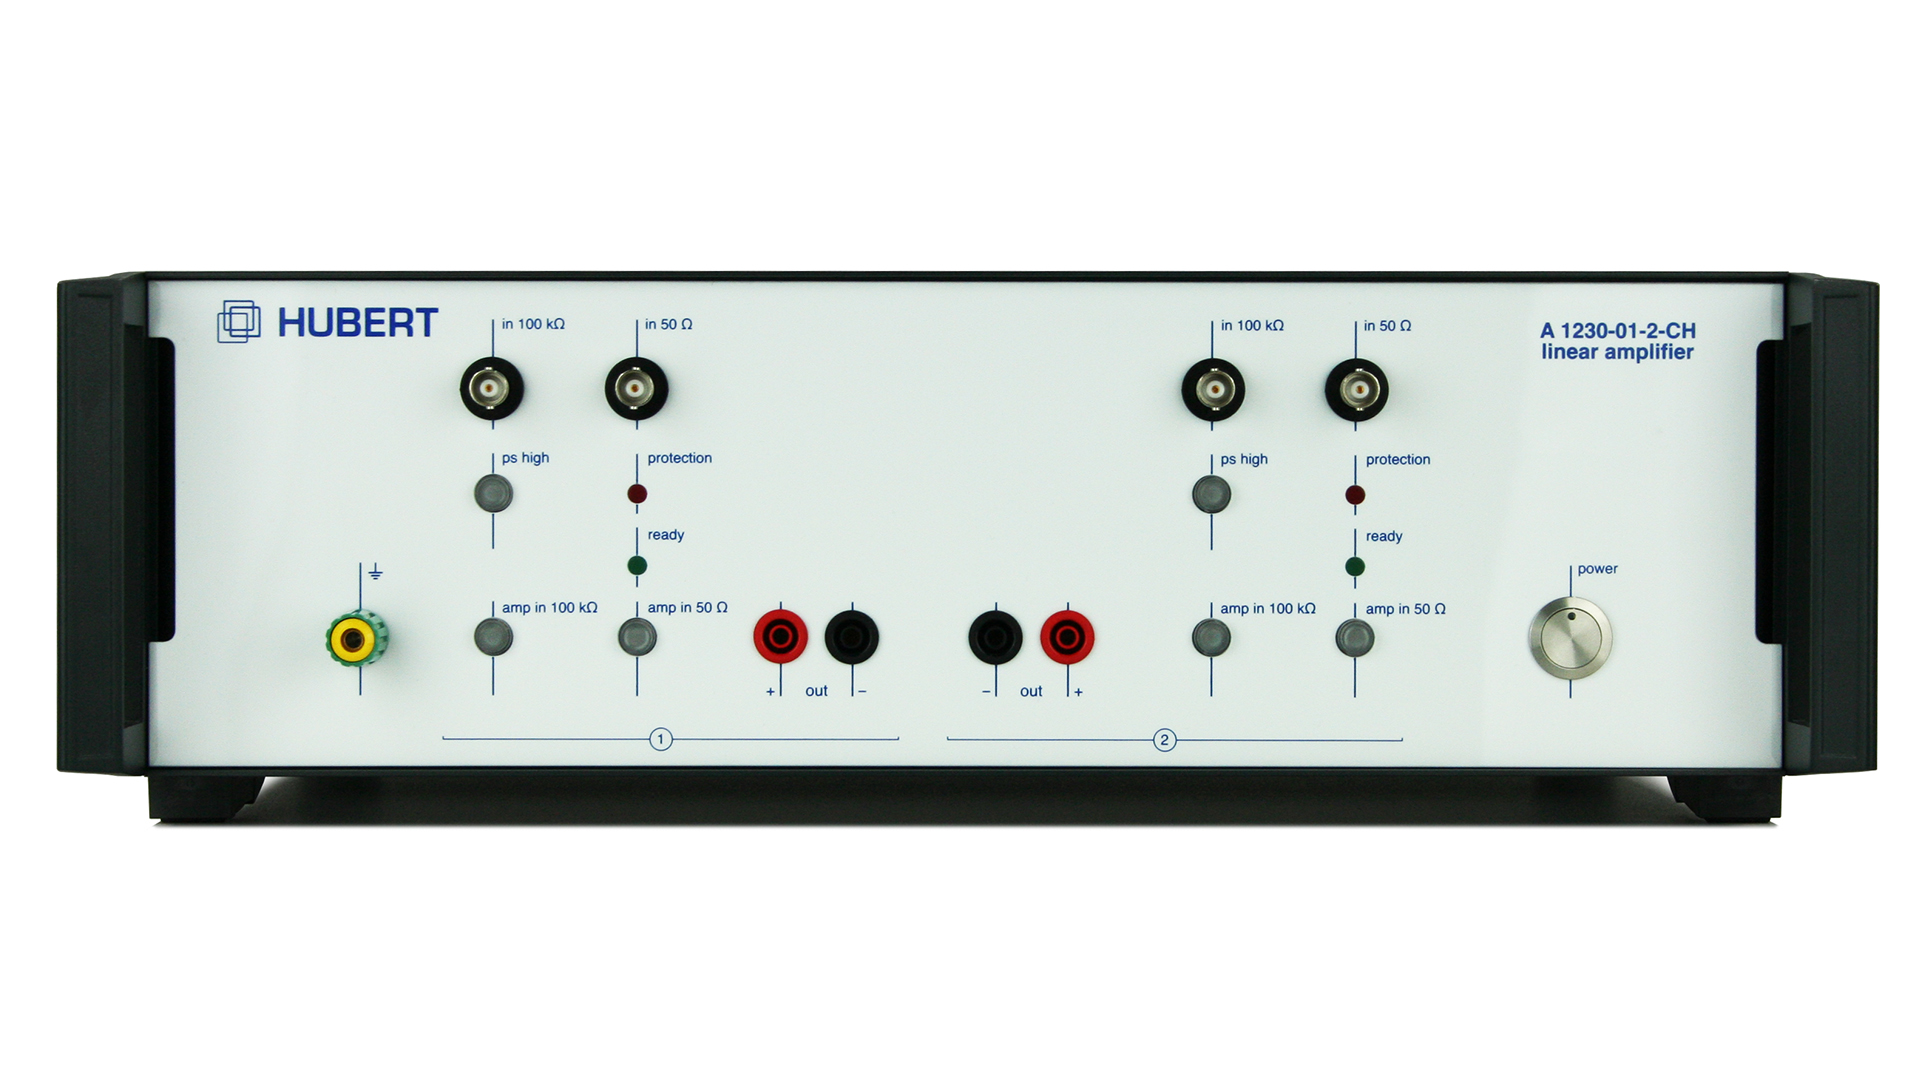 HUBERT A 1230-01-2-CH linear amplifier